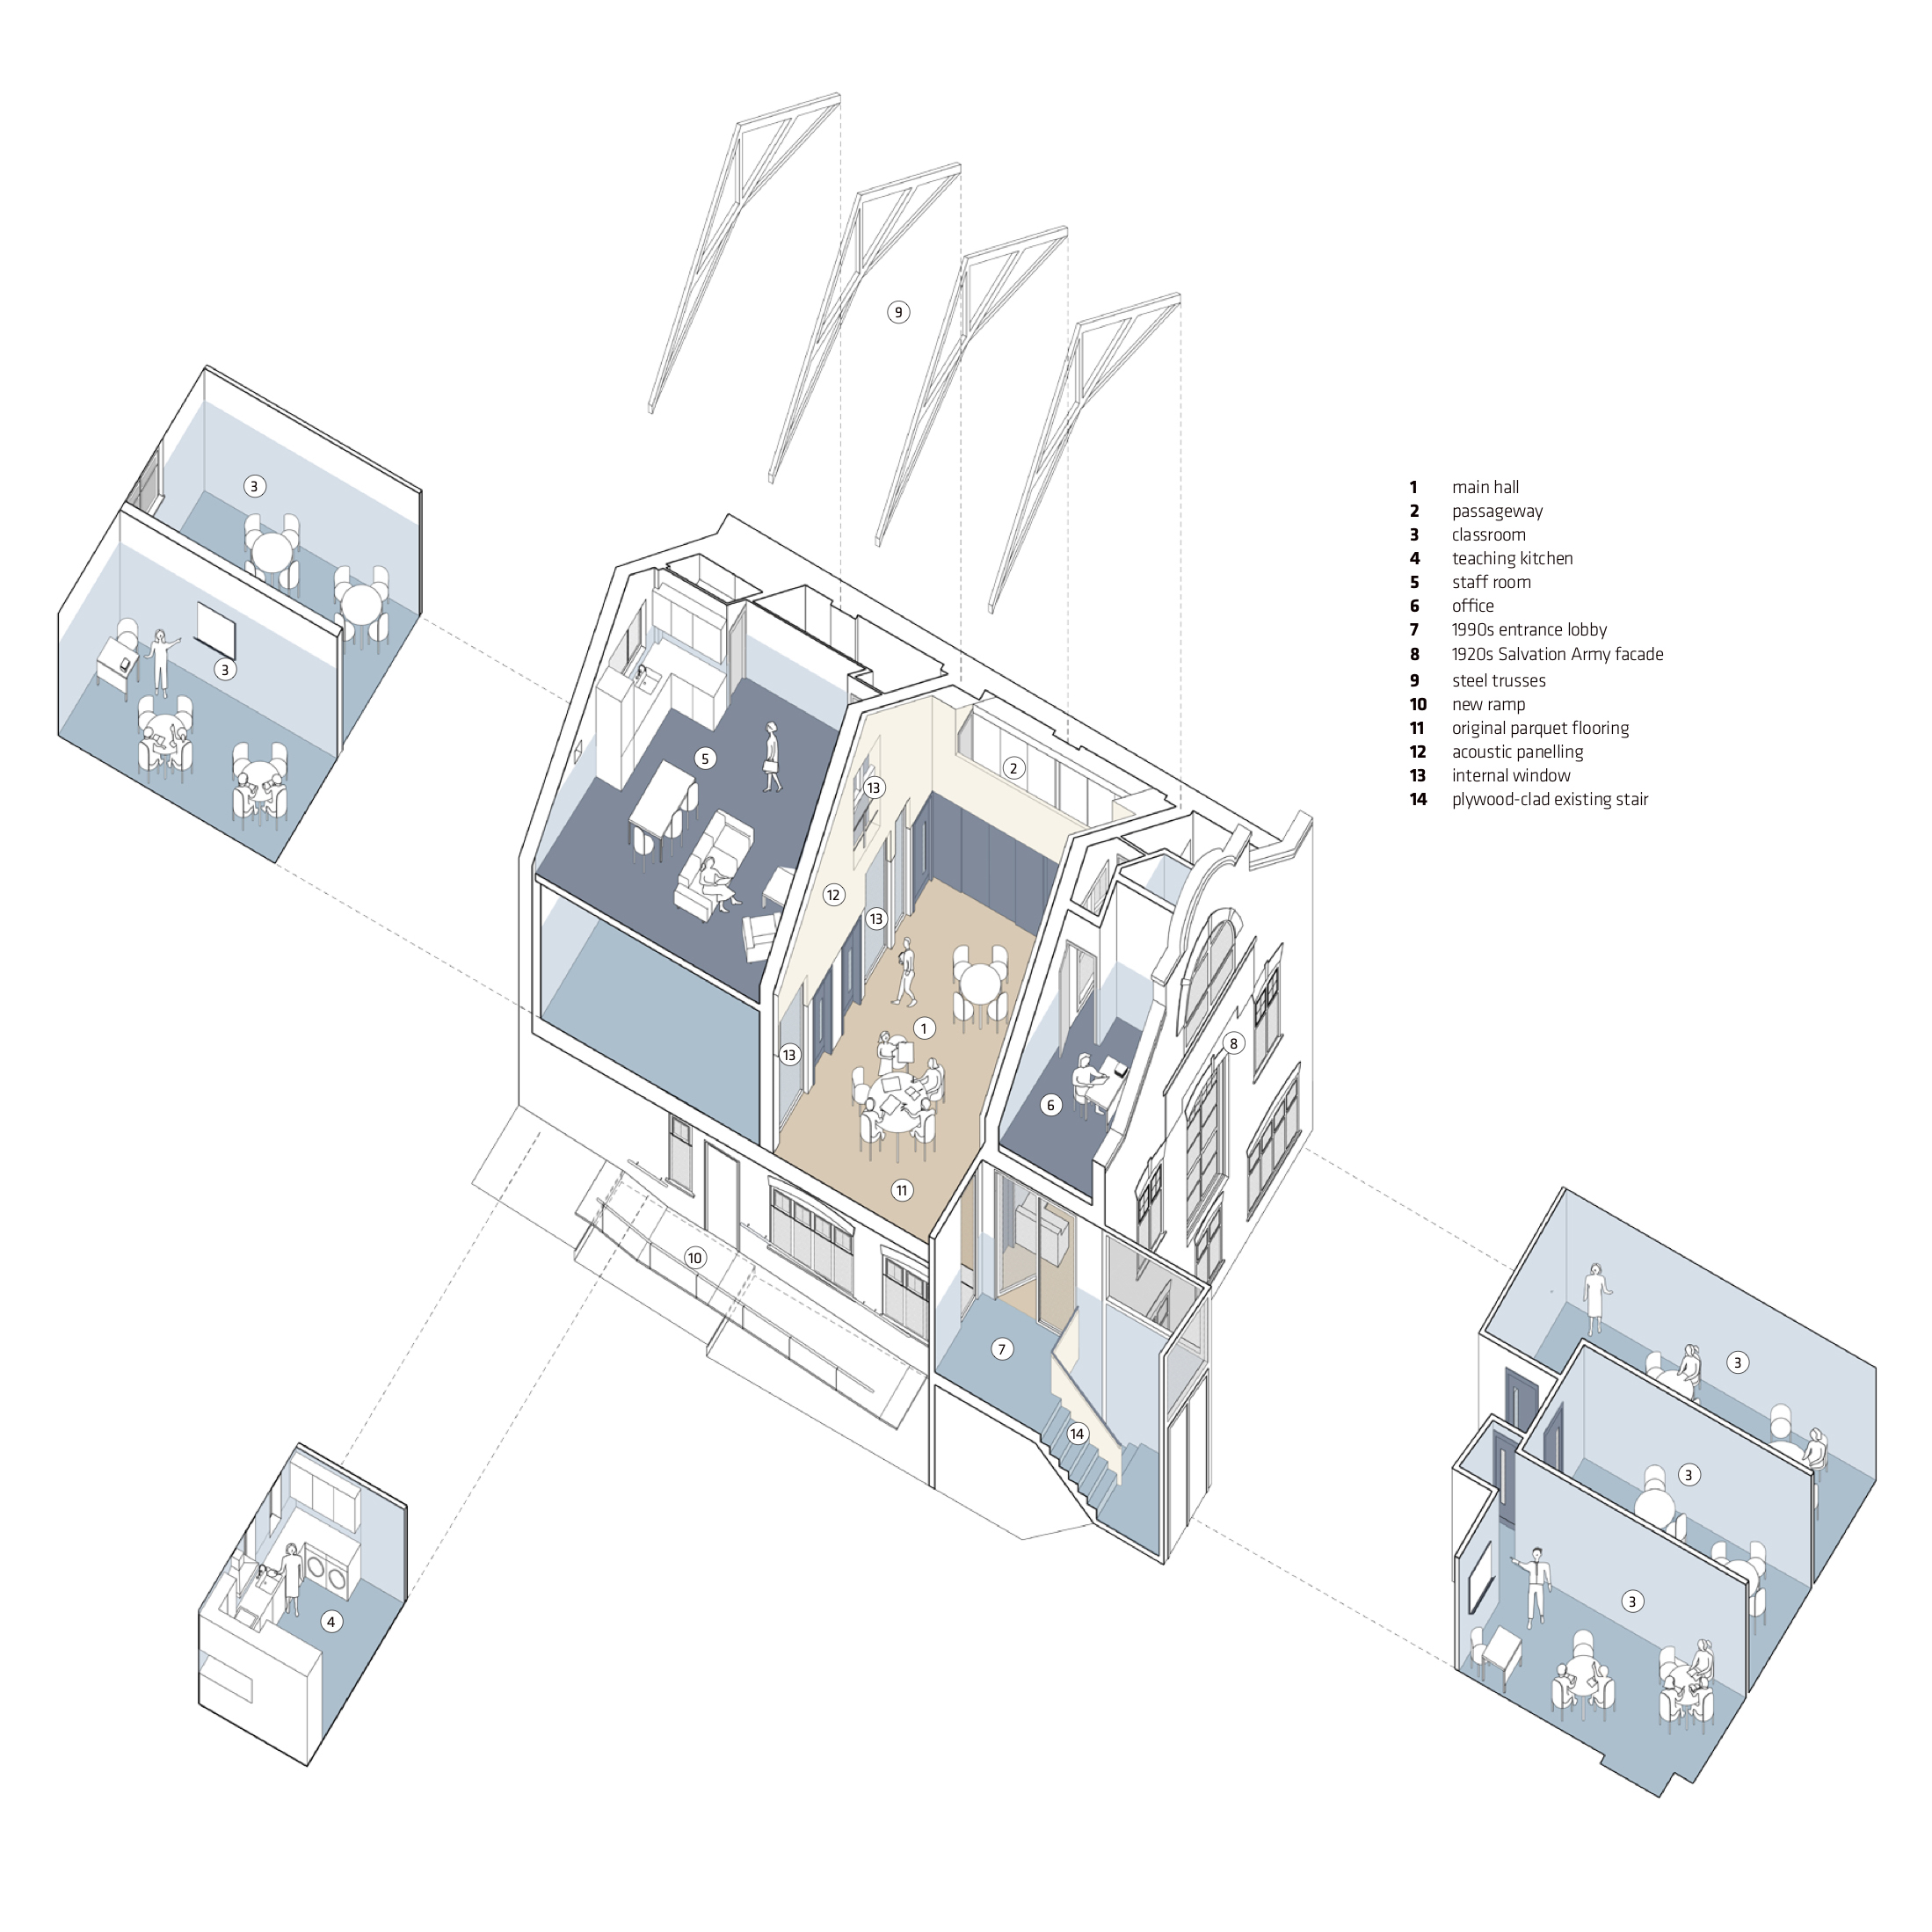 Snowflake School for Children with Autism, Axonometric drawing